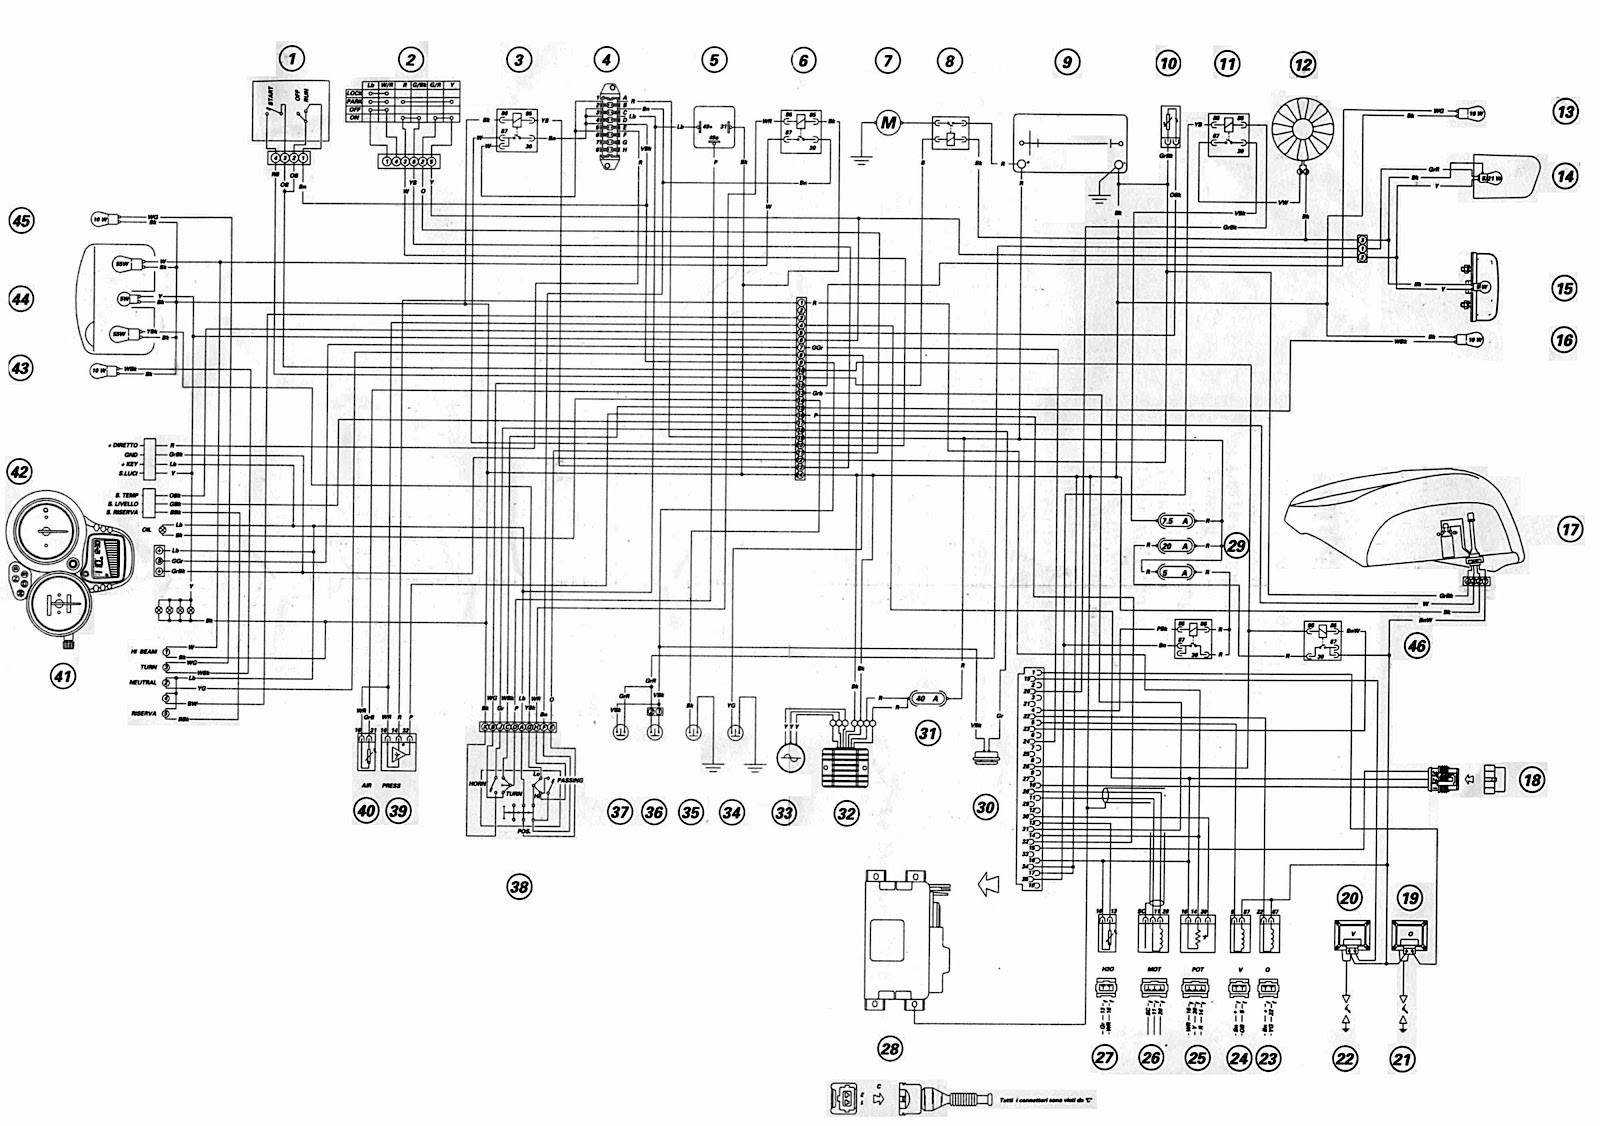 2004 Gsxr 600 Headlight Wiring Diagram Somurich Com